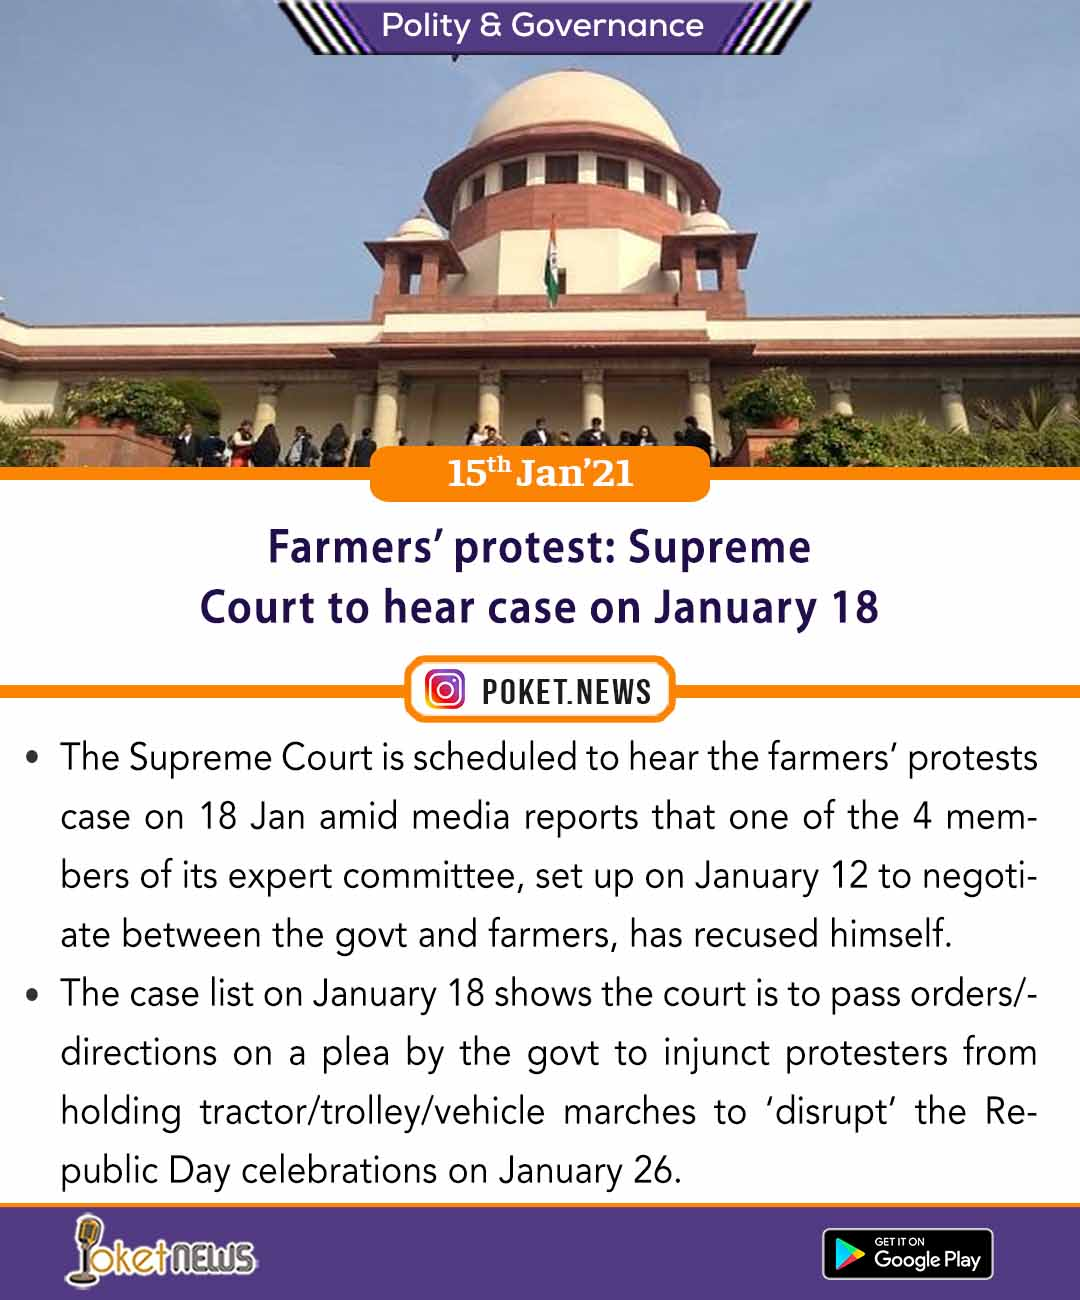 Farmers' protest: Supreme Court to hear case on January 18